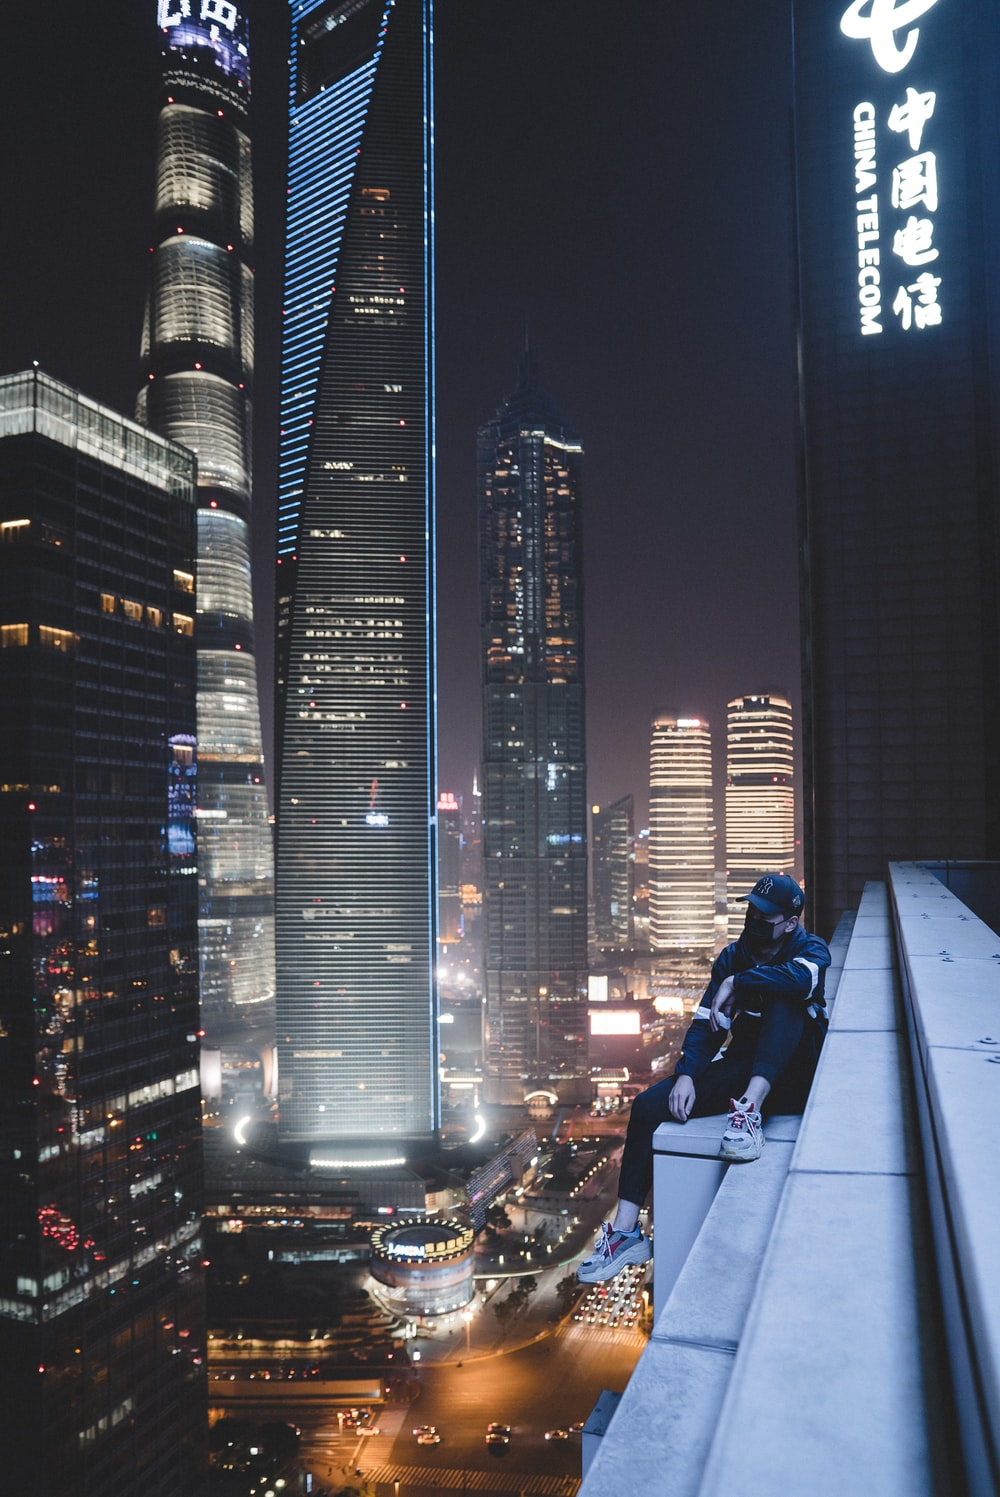 man sitting on building gutter during nighttime